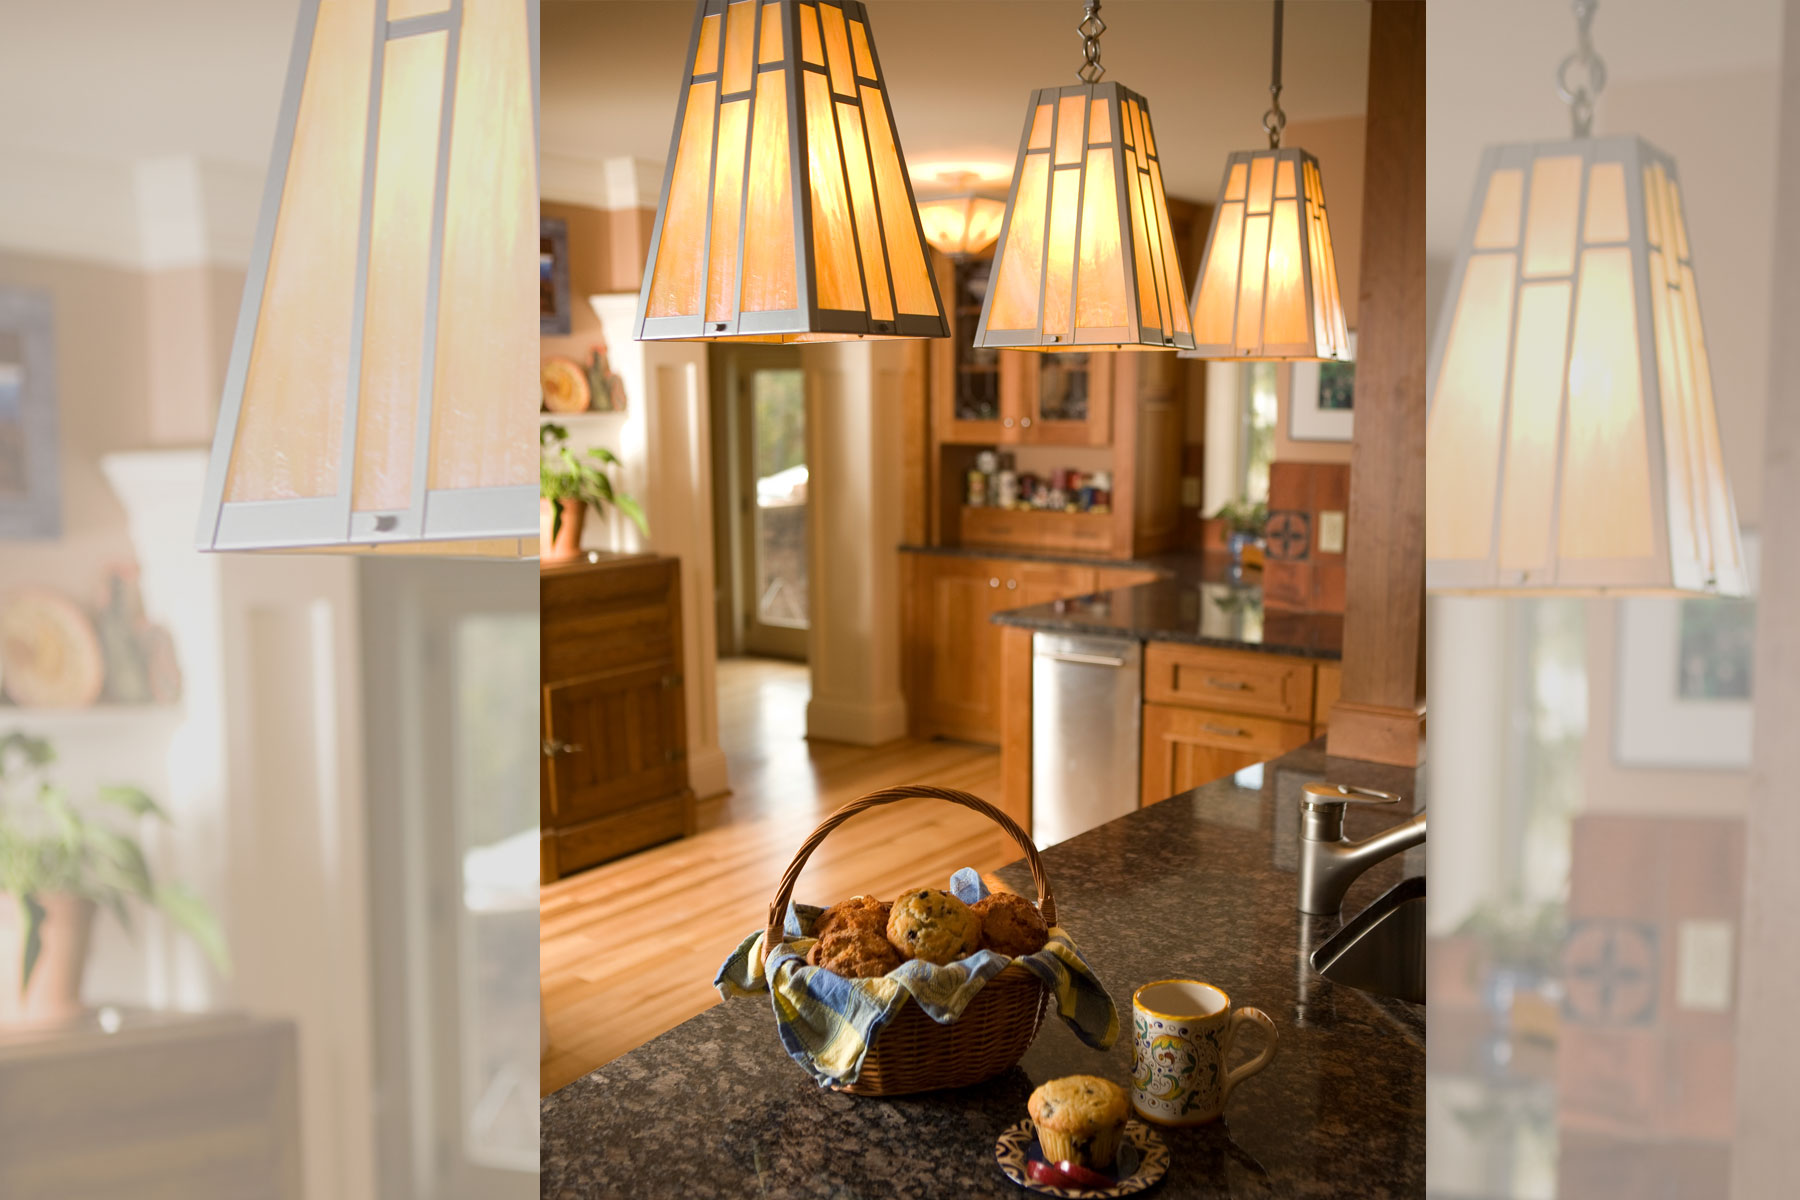 Custom craftsman pendant lights in kitchen renovation